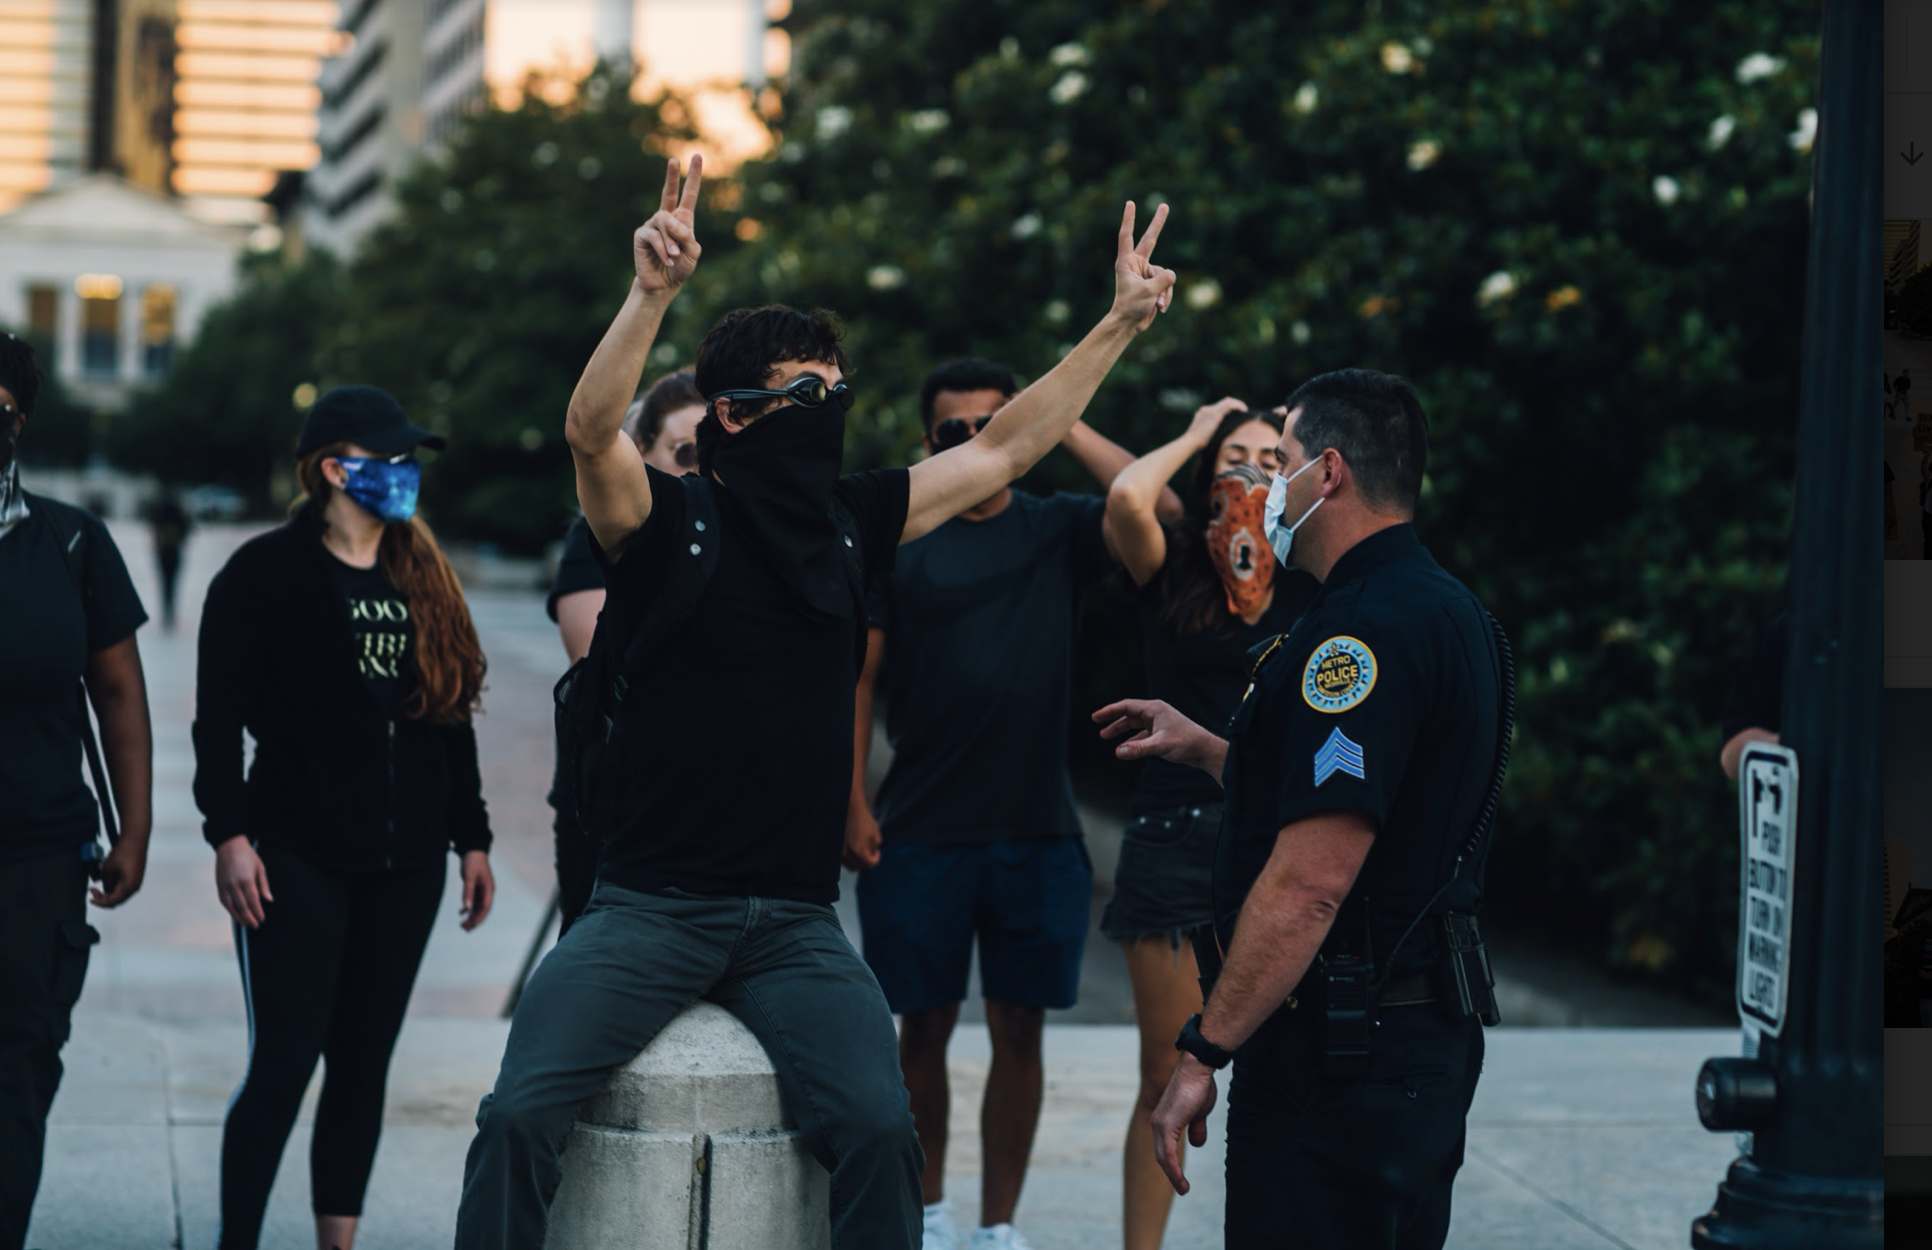 Nashville, Tenn. May 31 - A demonstrator gesticulates with eight fingers, to symbolize how long George Floyd was held down, at a Metro Nashville Police officer. j(Photo: Alex Kent)